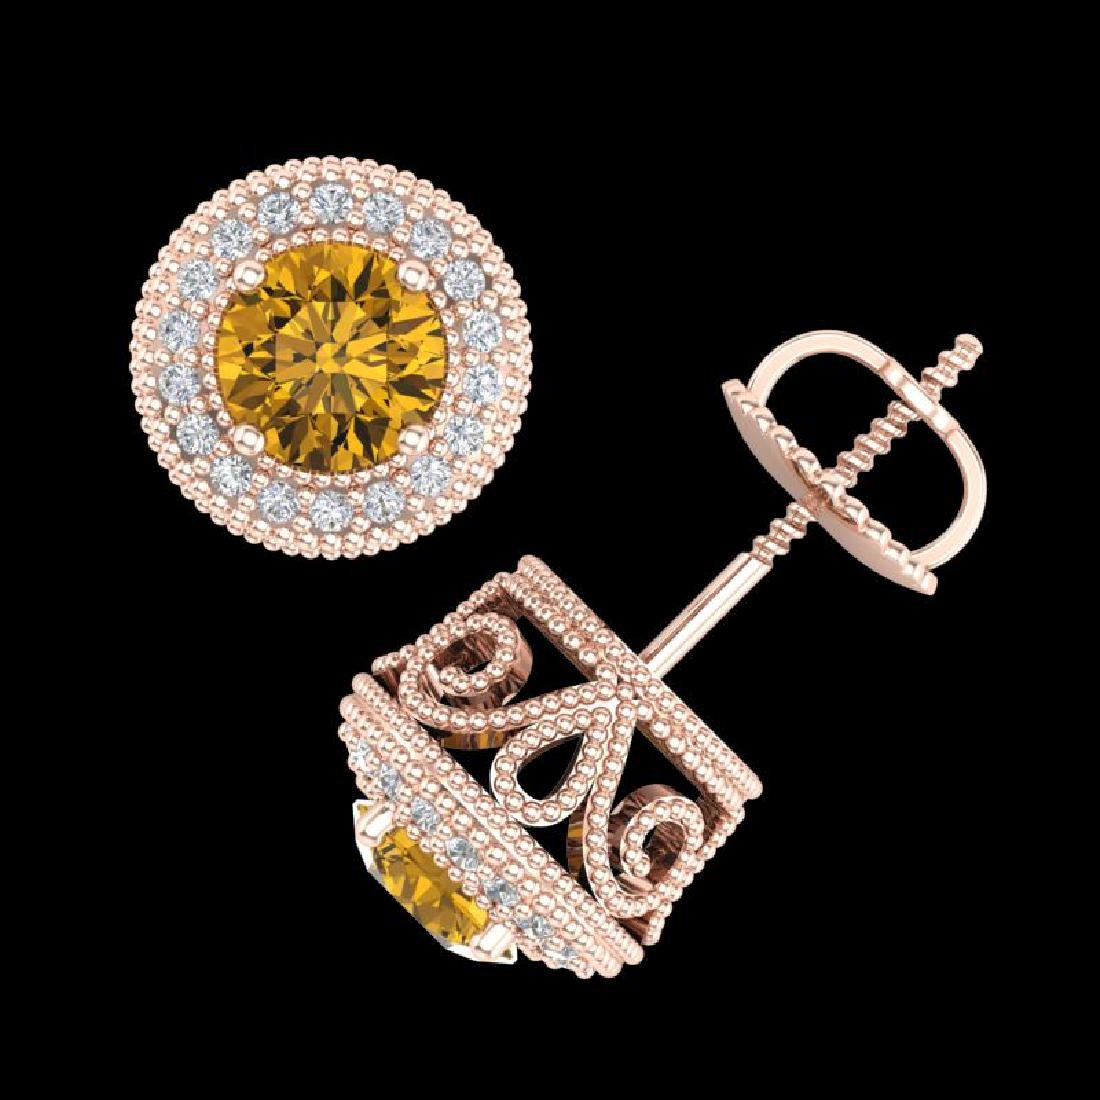 1.55 CTW Intense Fancy Yellow Diamond Art Deco Stud - 3